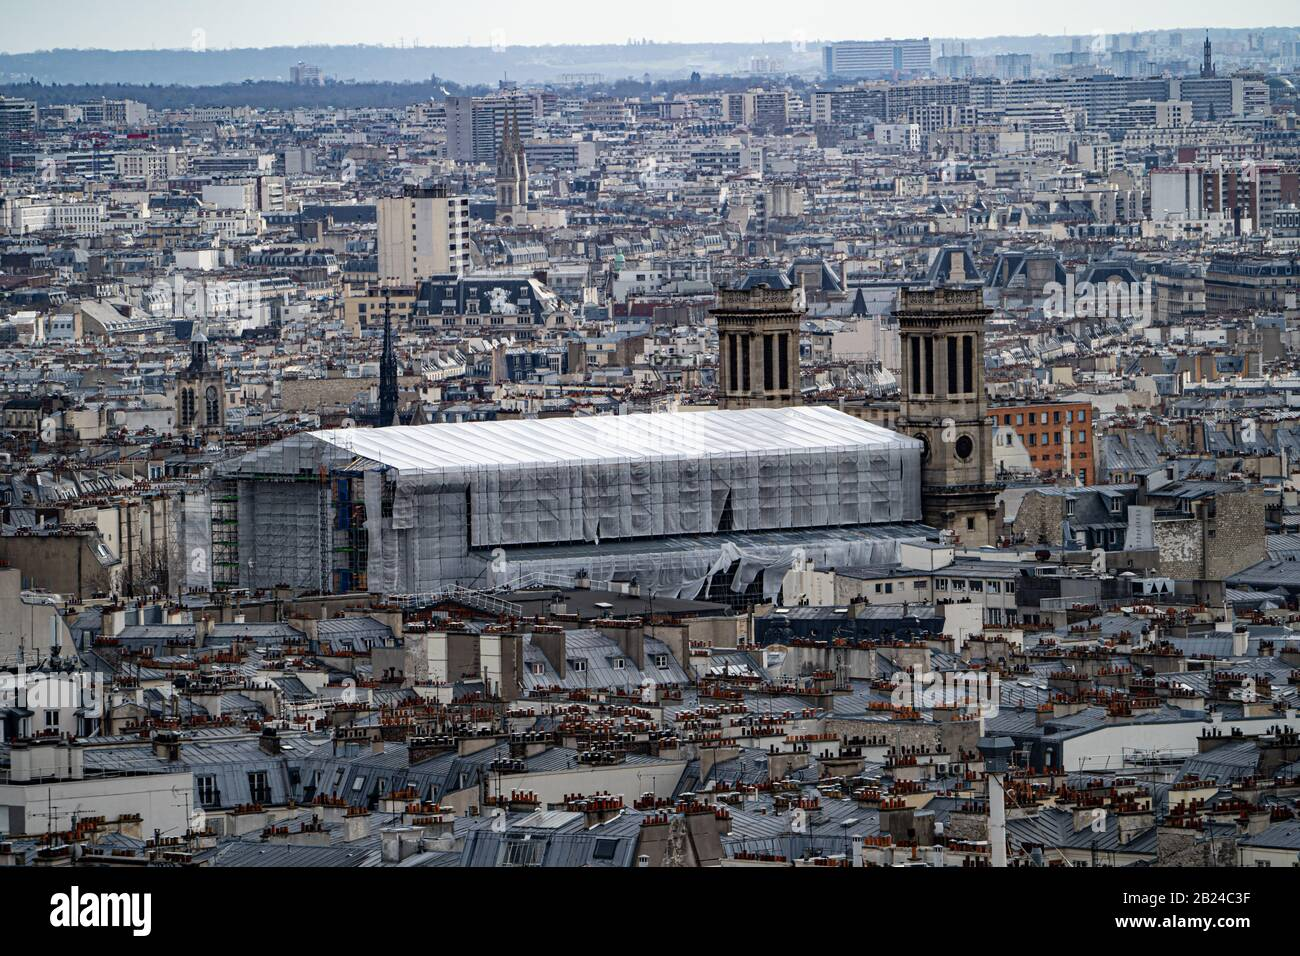 Notre Dame Cathedral In Paris France In February 2020 Covered While Restoration Work Is Carried Out Following The Fire Of 2019 Stock Photo Alamy